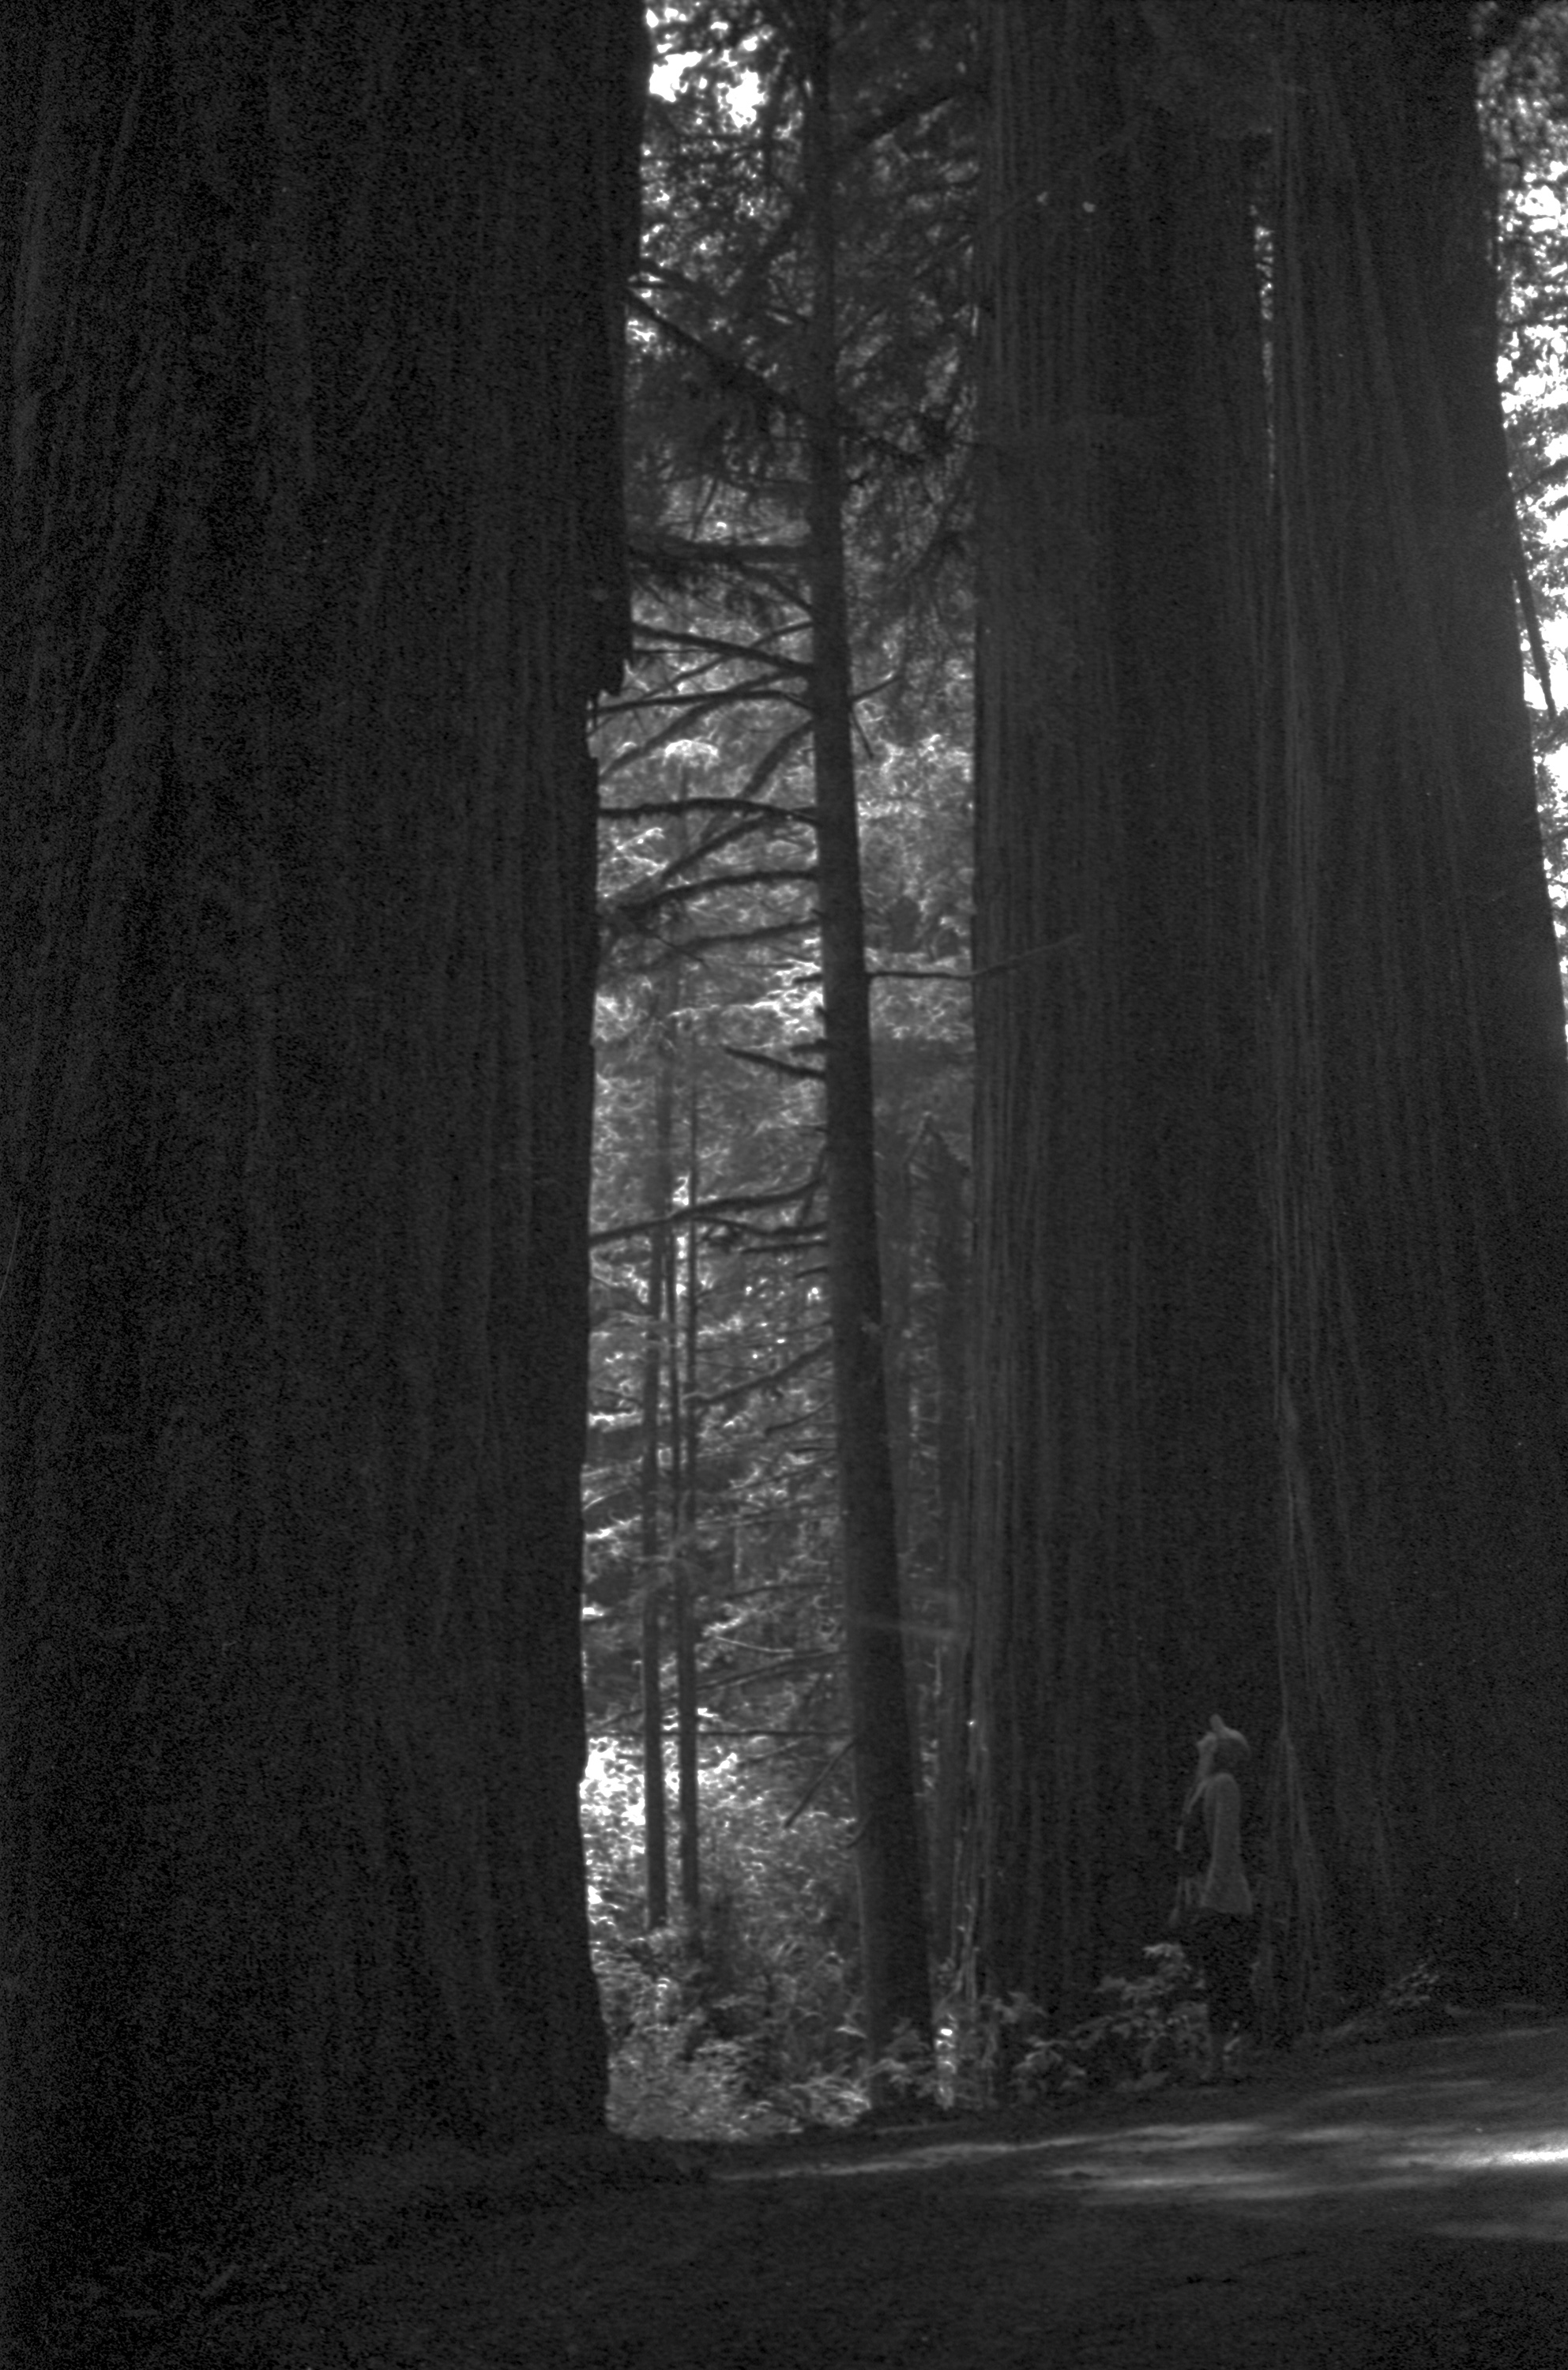 Feeling small in the redwood forest.